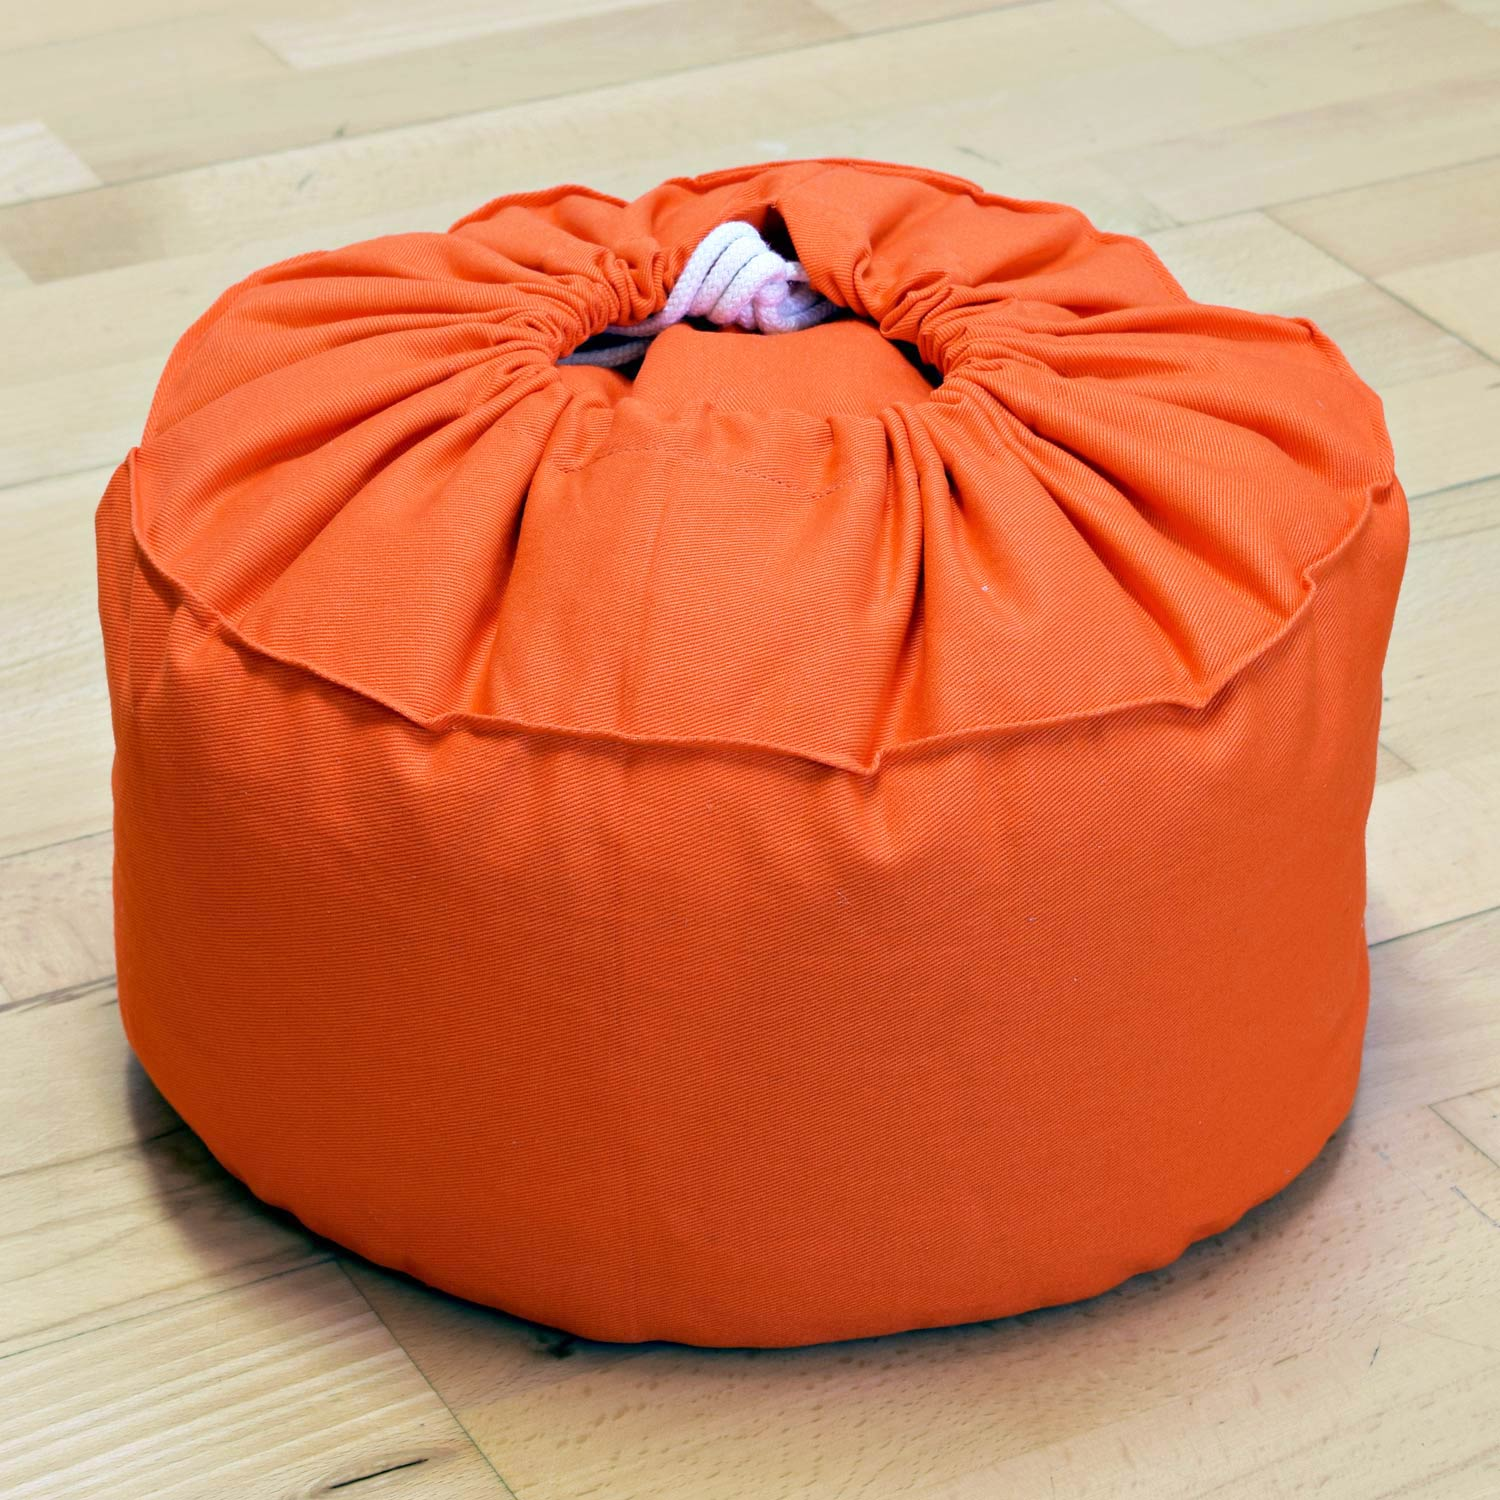 Kissen Orange Meditation Cushion Baghi Round Heart Flower Orange